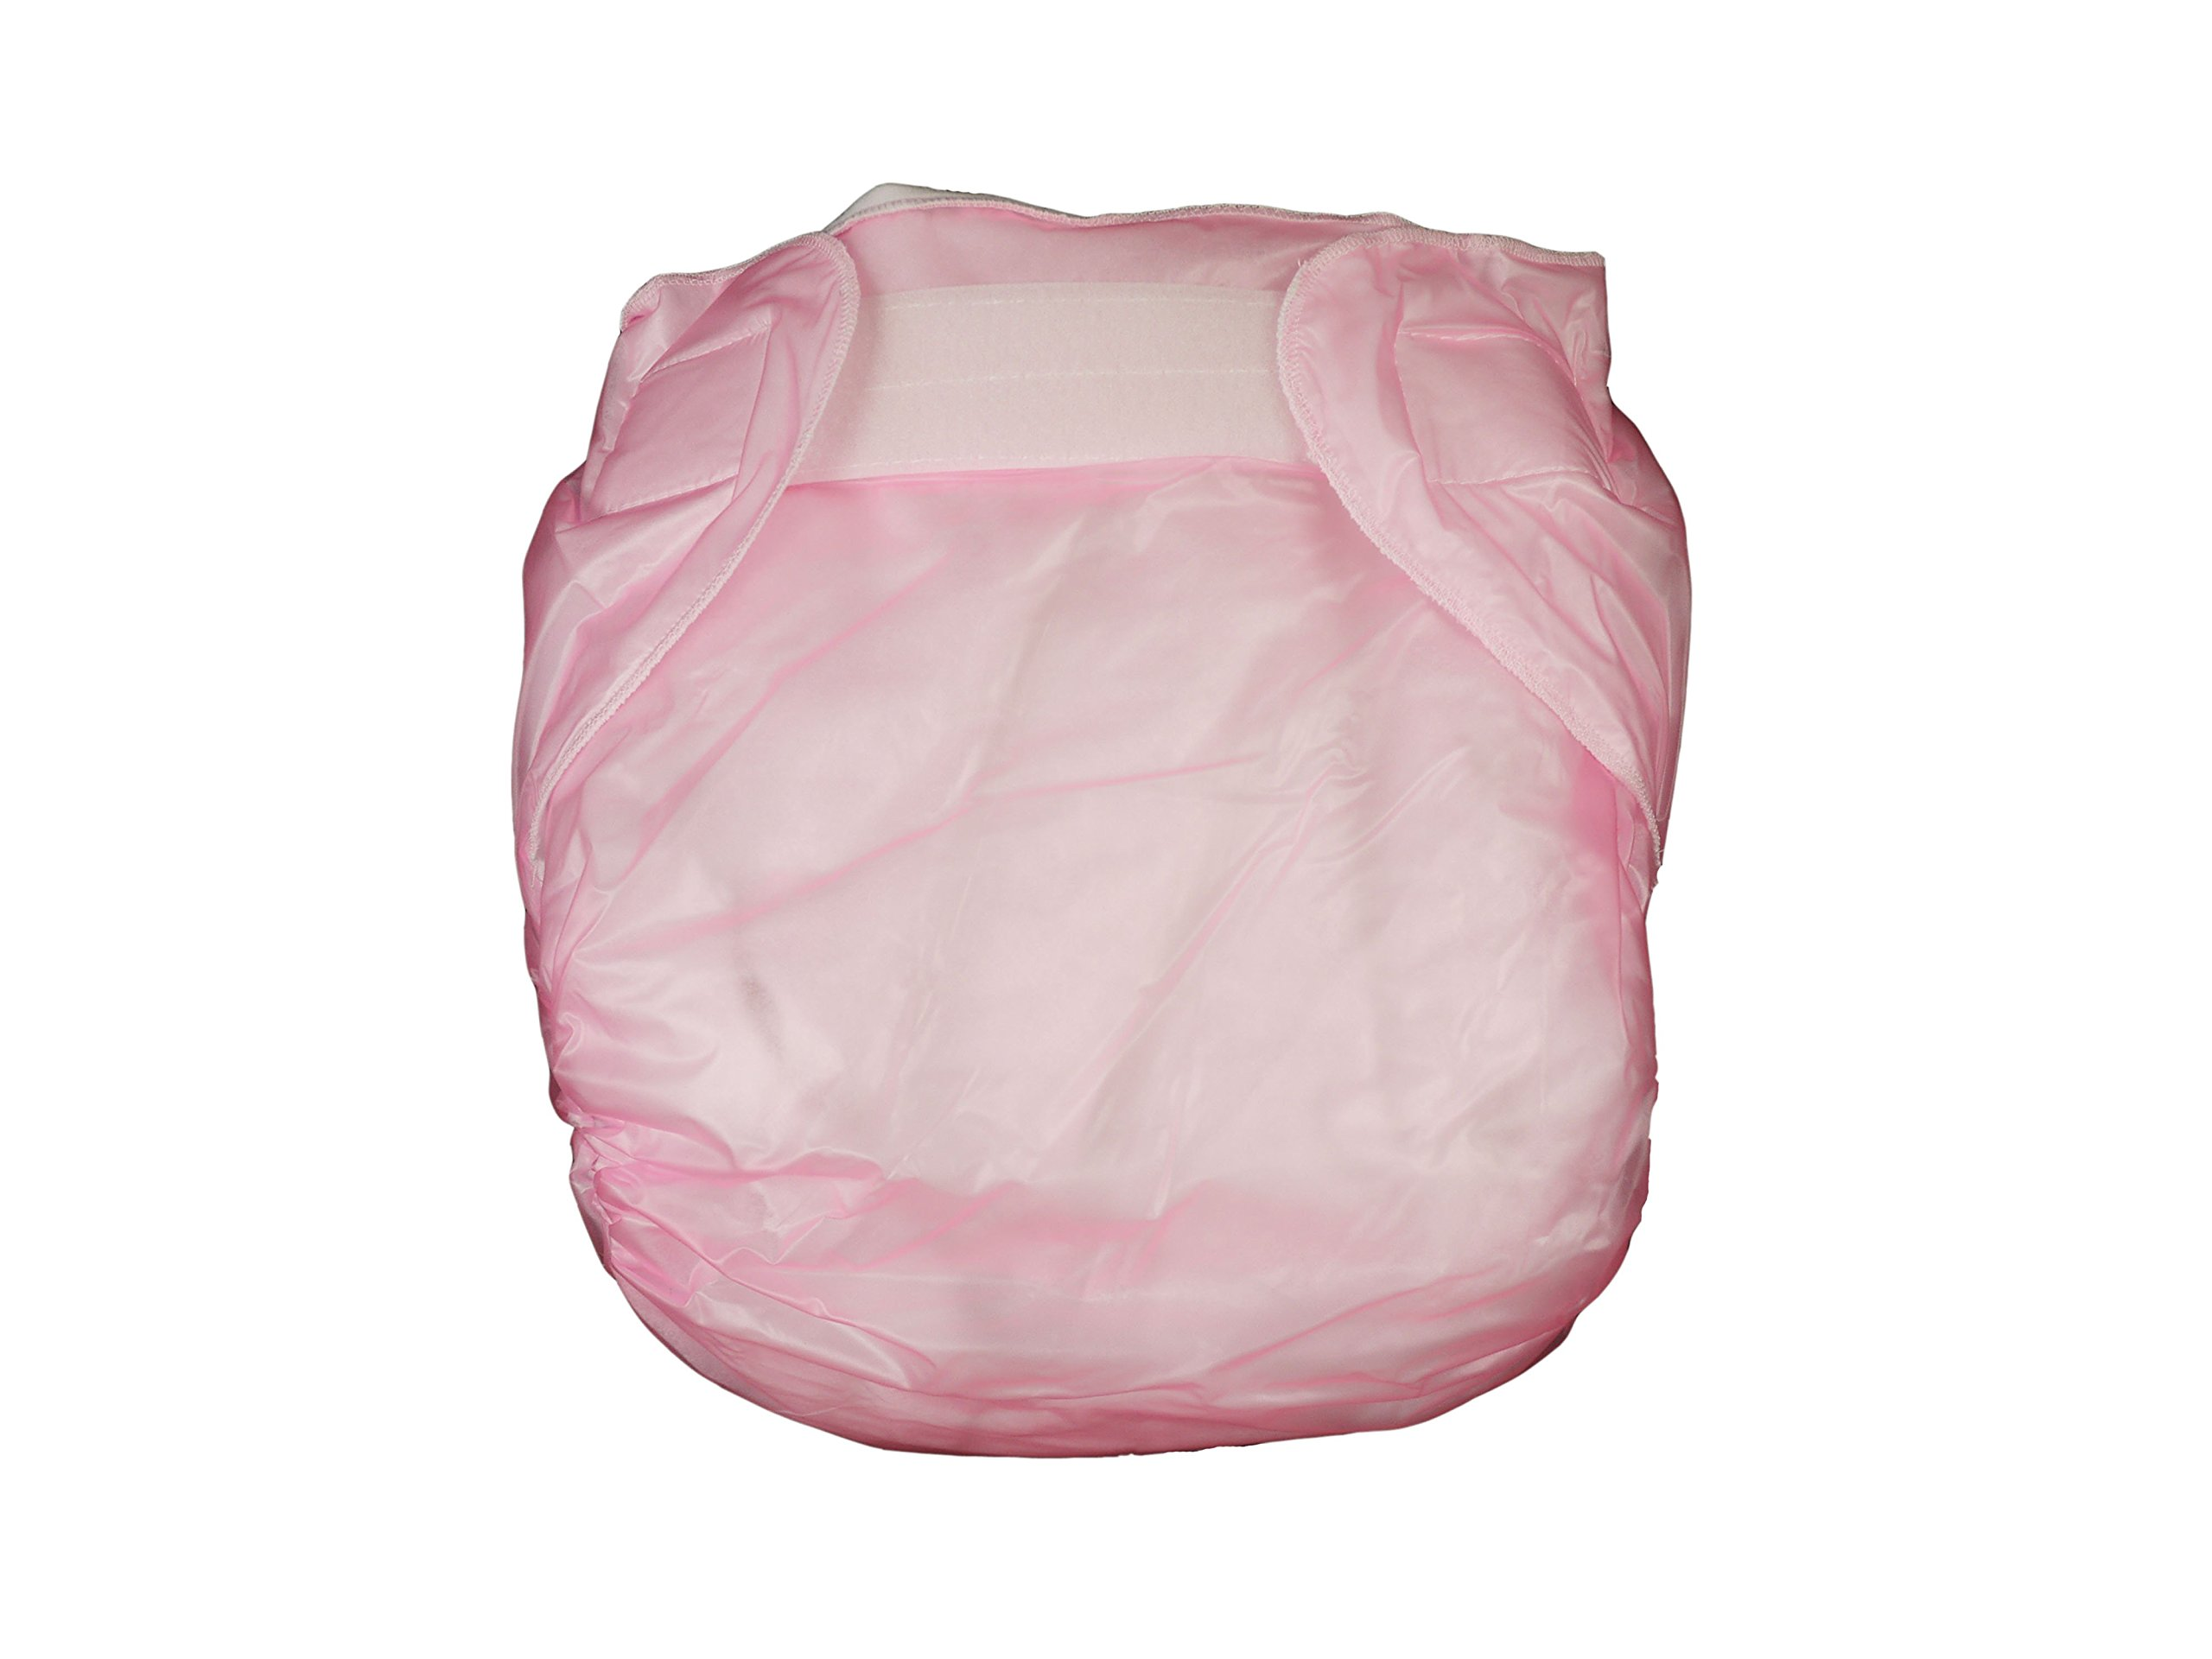 Amazon.com : Haian Adult Incontinence AIO Velcro PVC Diapers Color Transparent Pink (XX-Large) : Baby